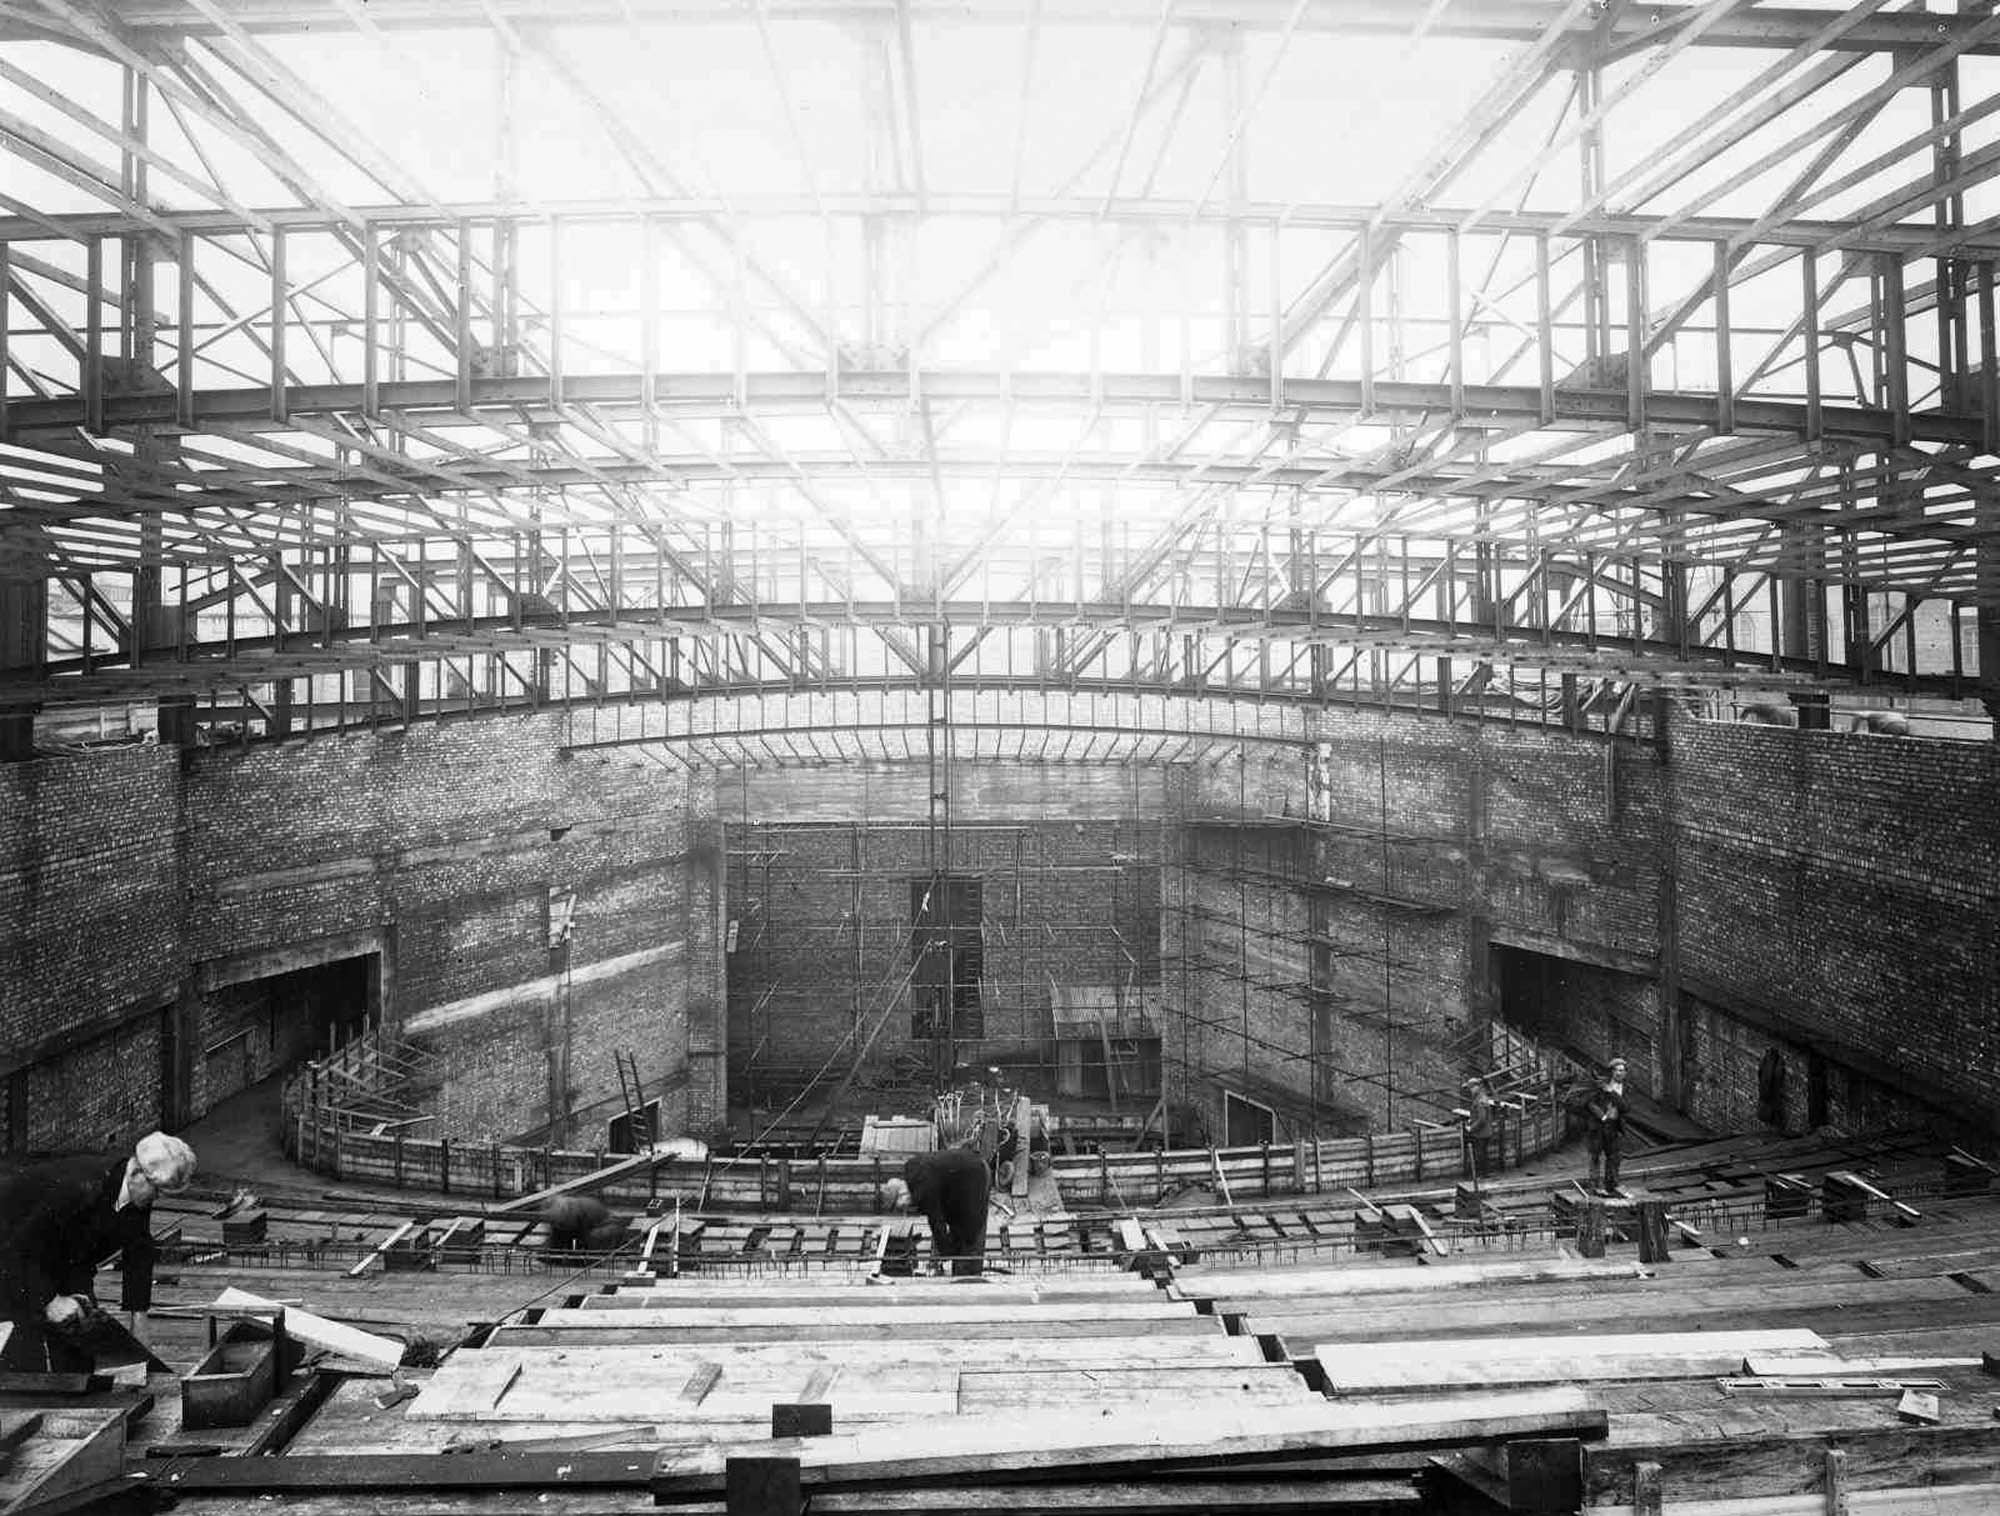 The main auditorium under construction, 1937 - Affective Digital Histories, University of Leicester